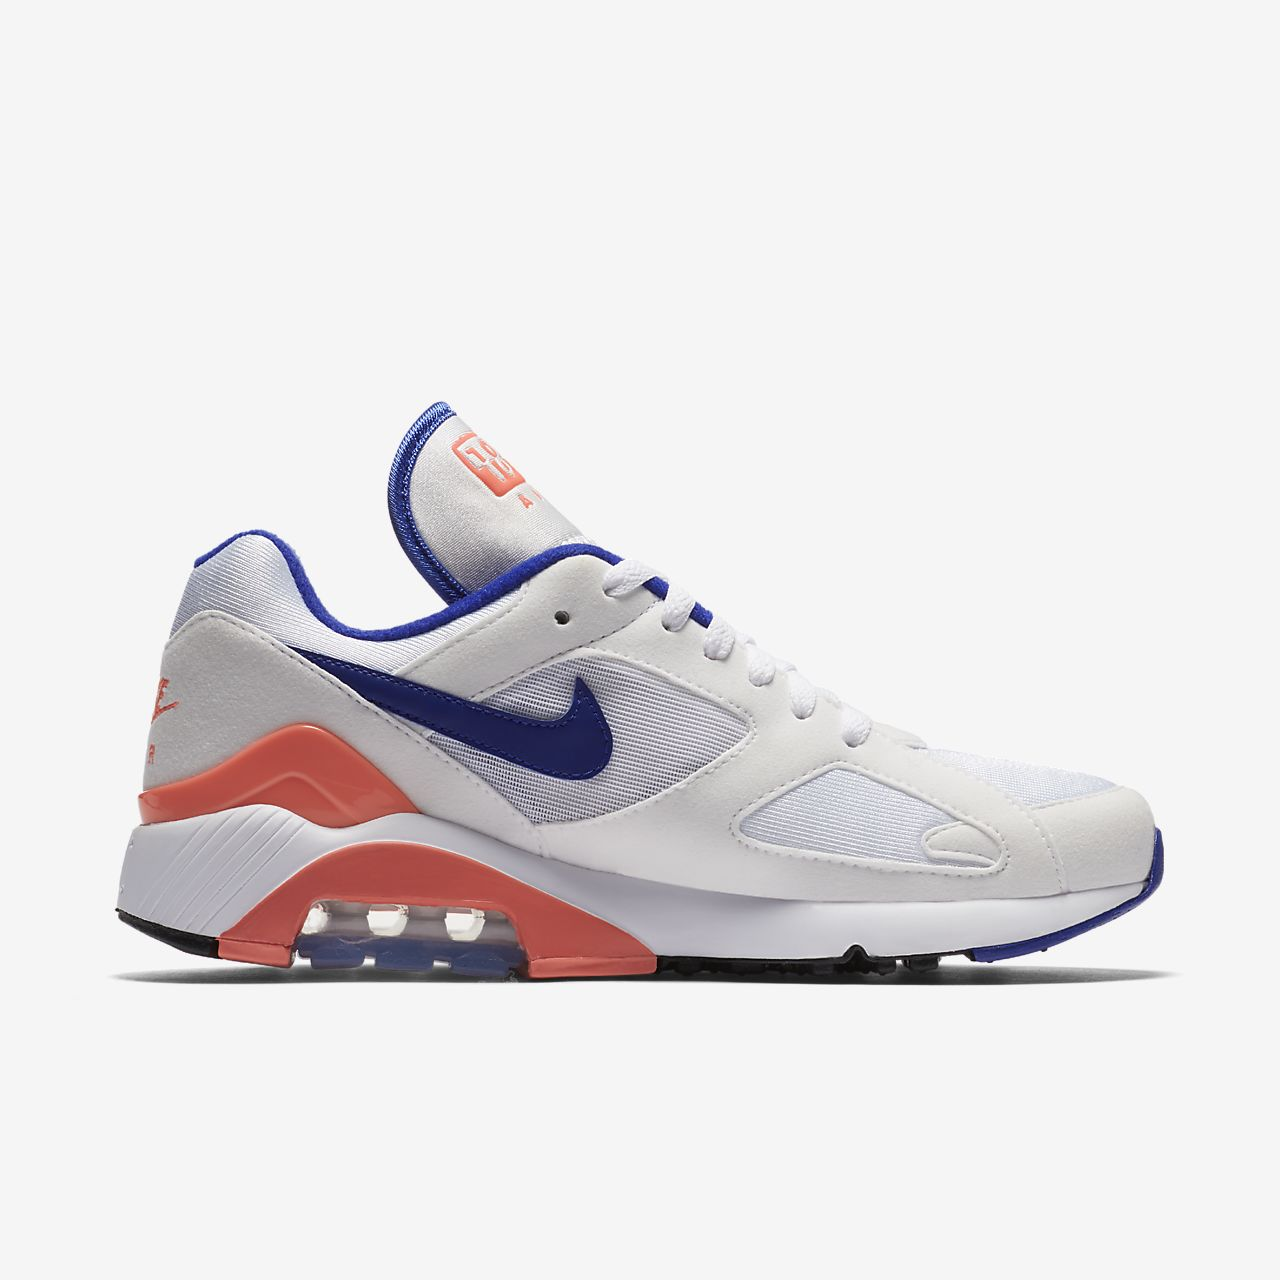 Chaussures De Course Nike Air Max Dames Ruse